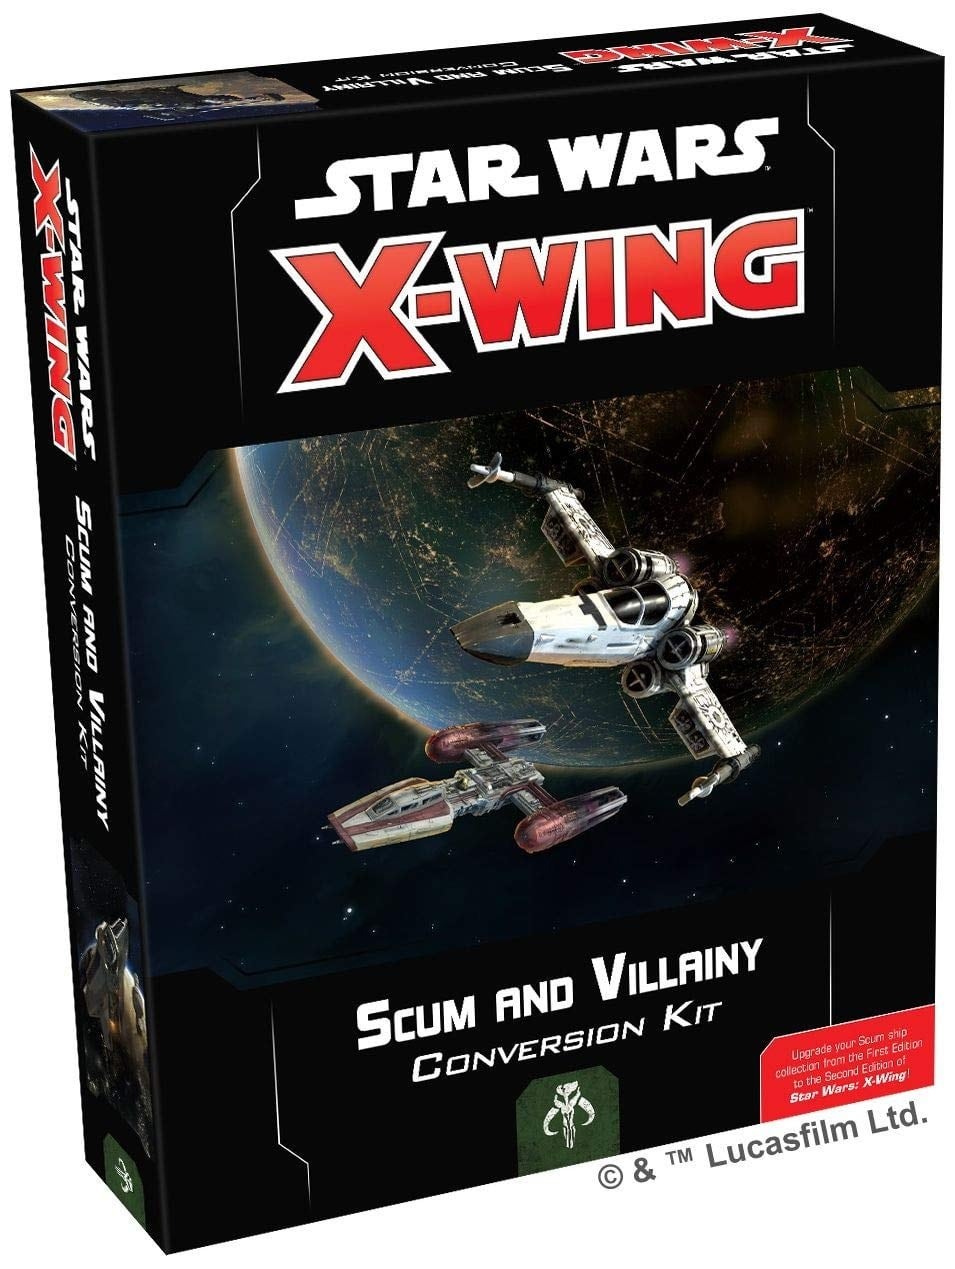 X-Wing Second Edition: Scum and Villainy Conversion $25 + Free shipping w/ Prime or $25